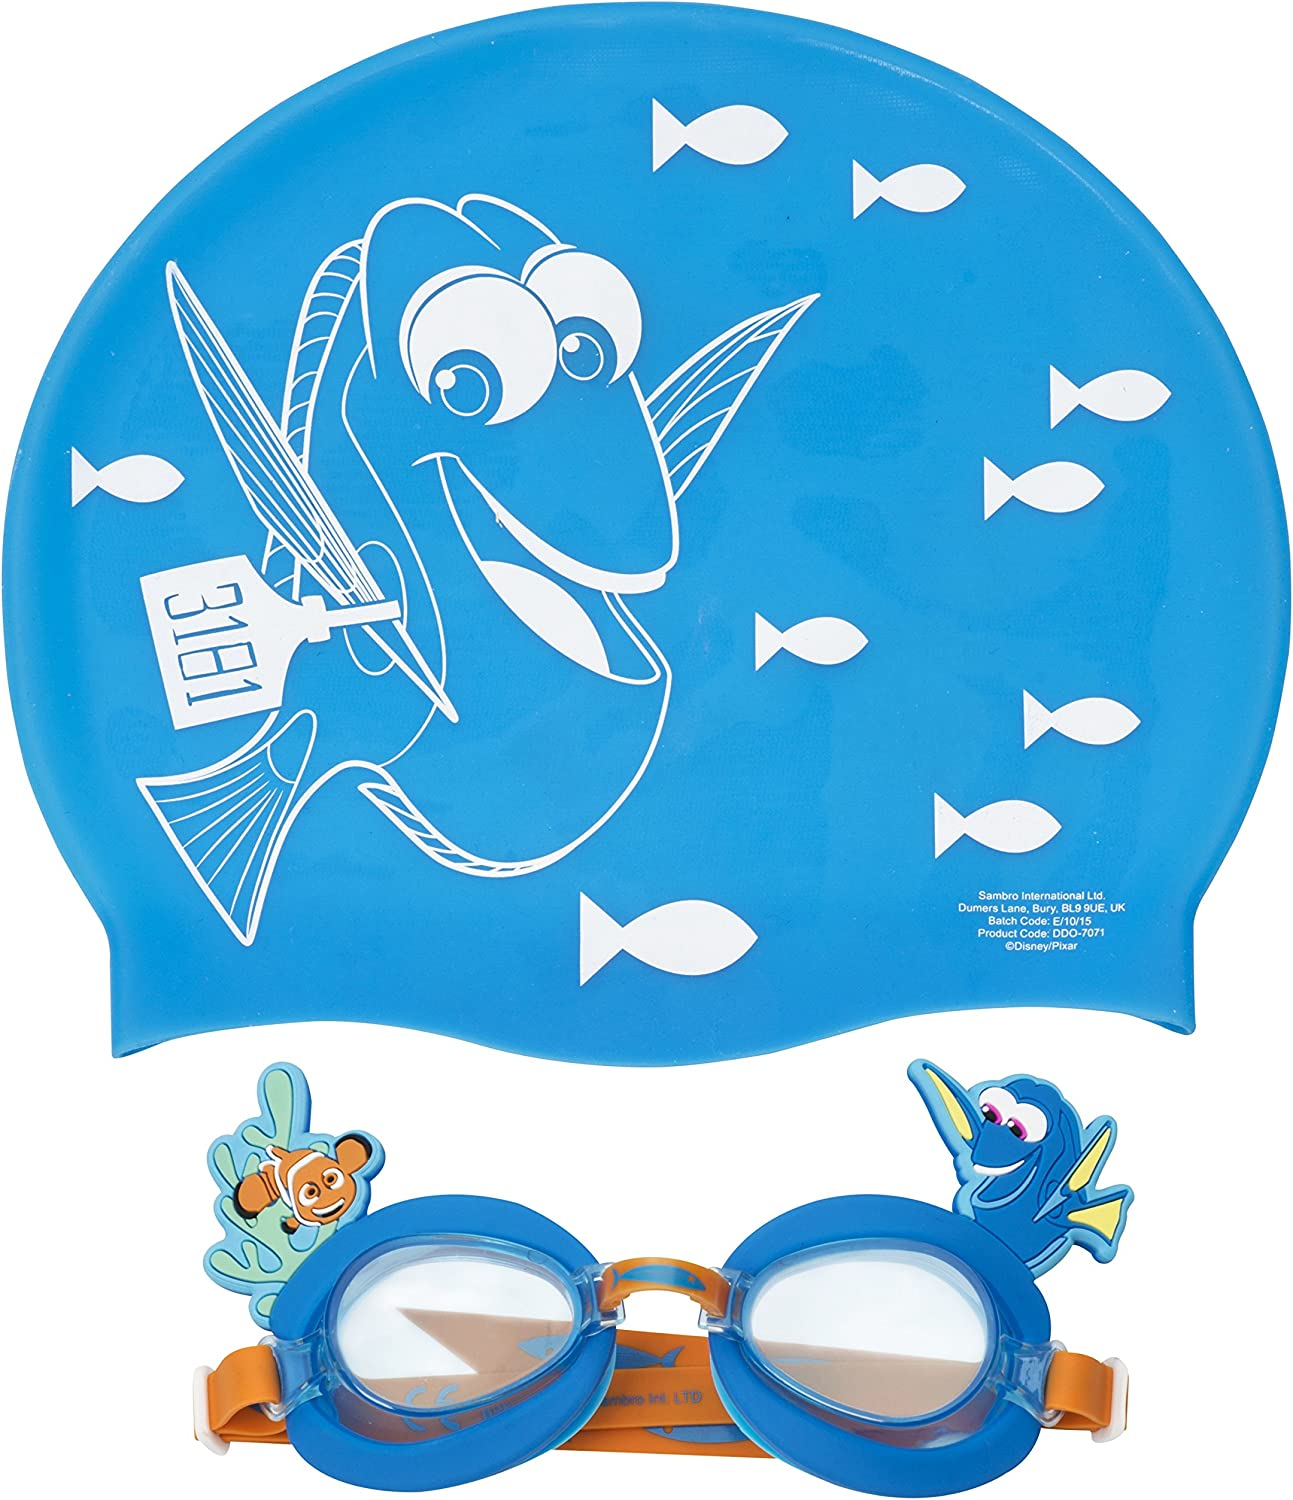 Nemo Blue Pool Swimming Hat And Nemo Dory Goggles By Sambro Finding Dory